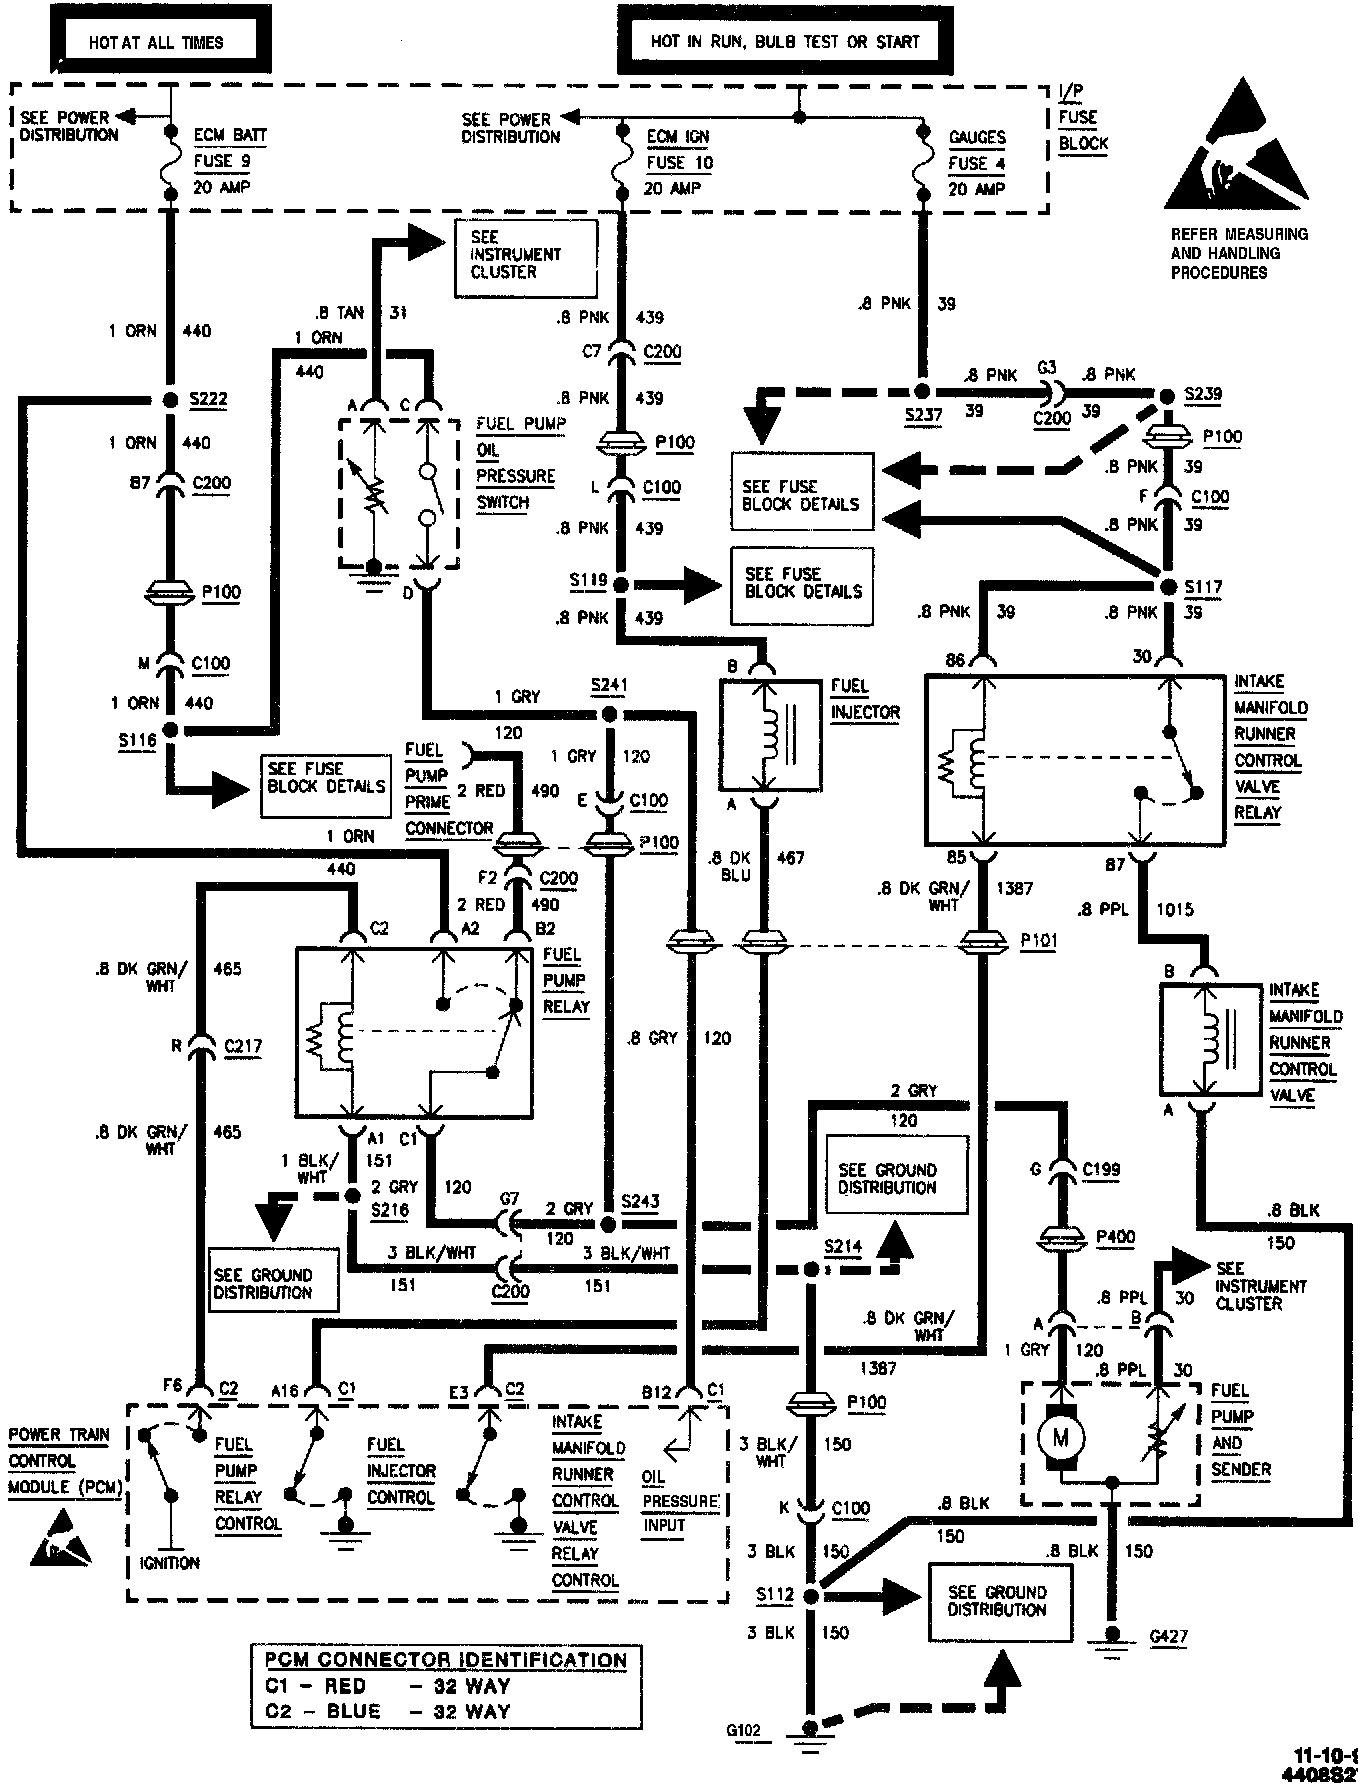 1996 Chevy Blazer Dash Wiring Diagram - Wiring Diagram K10 on